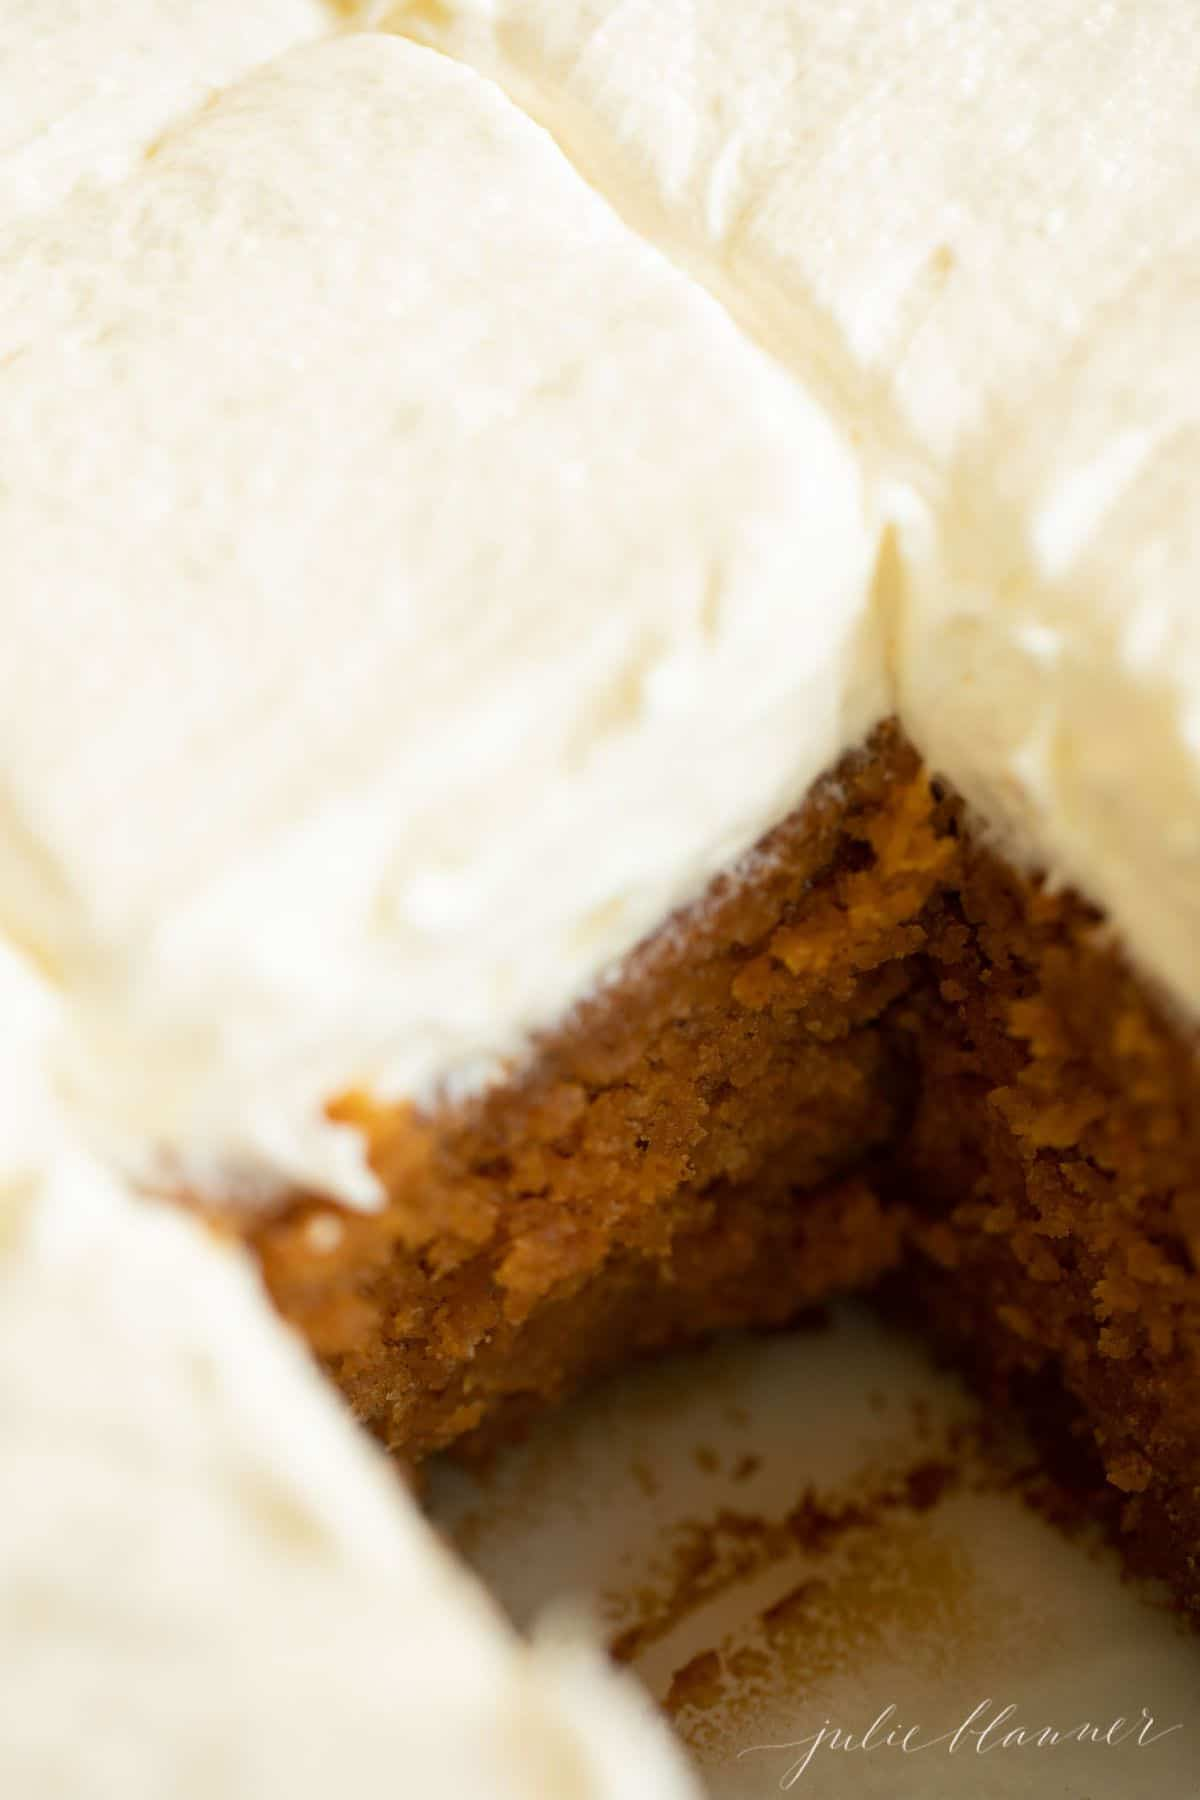 Pumpkin cake frosted with cream cheese frosting on a marble surface, with a piece missing.